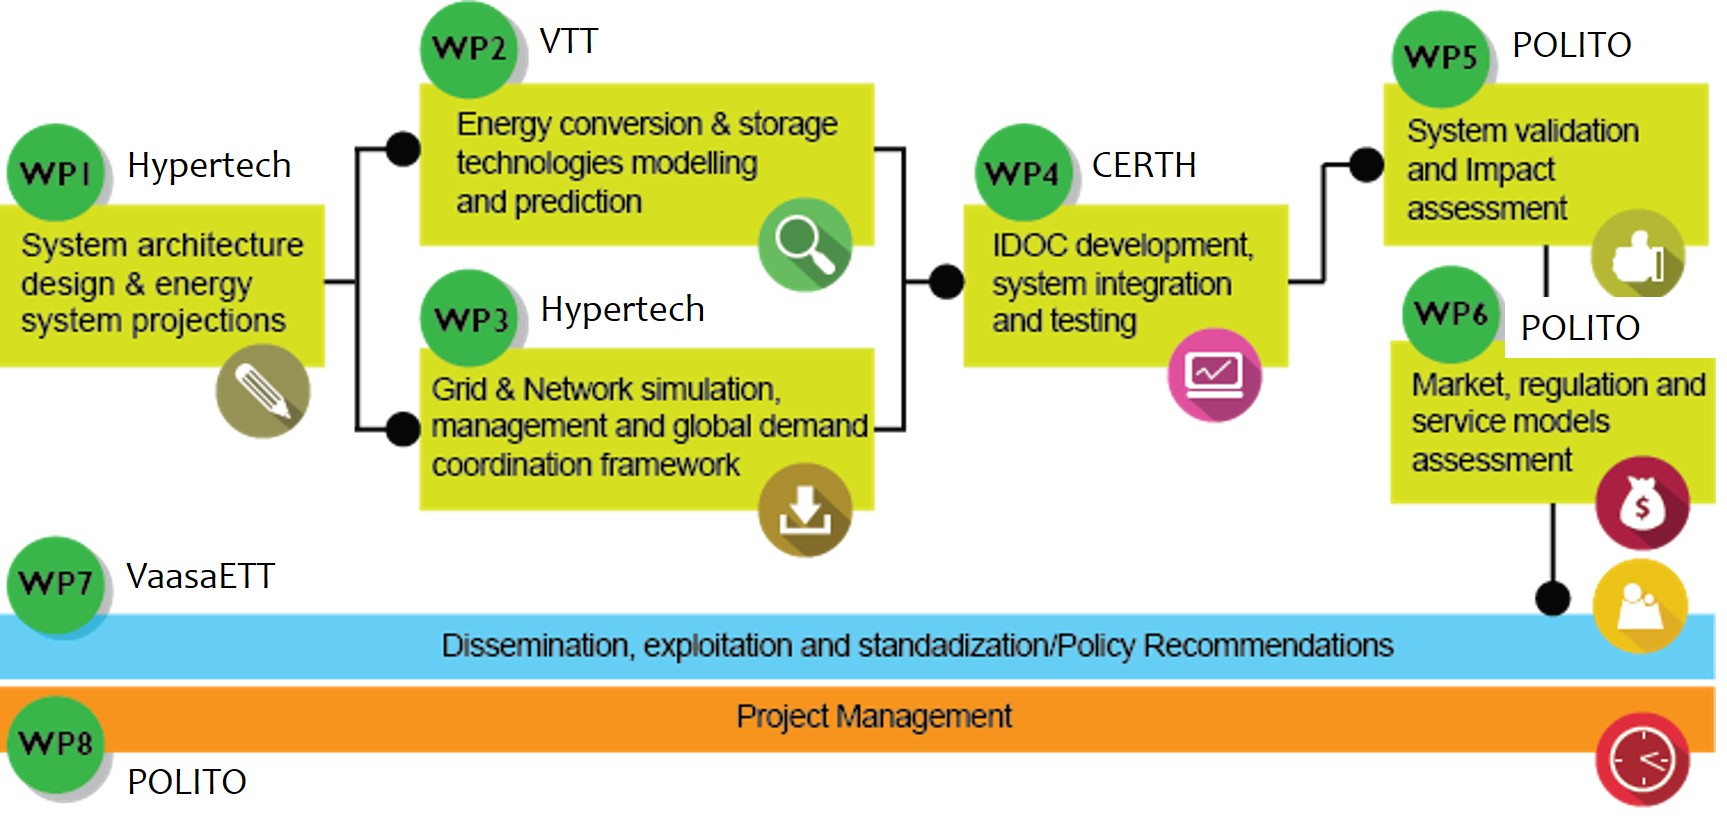 Major project activities and their dependencies